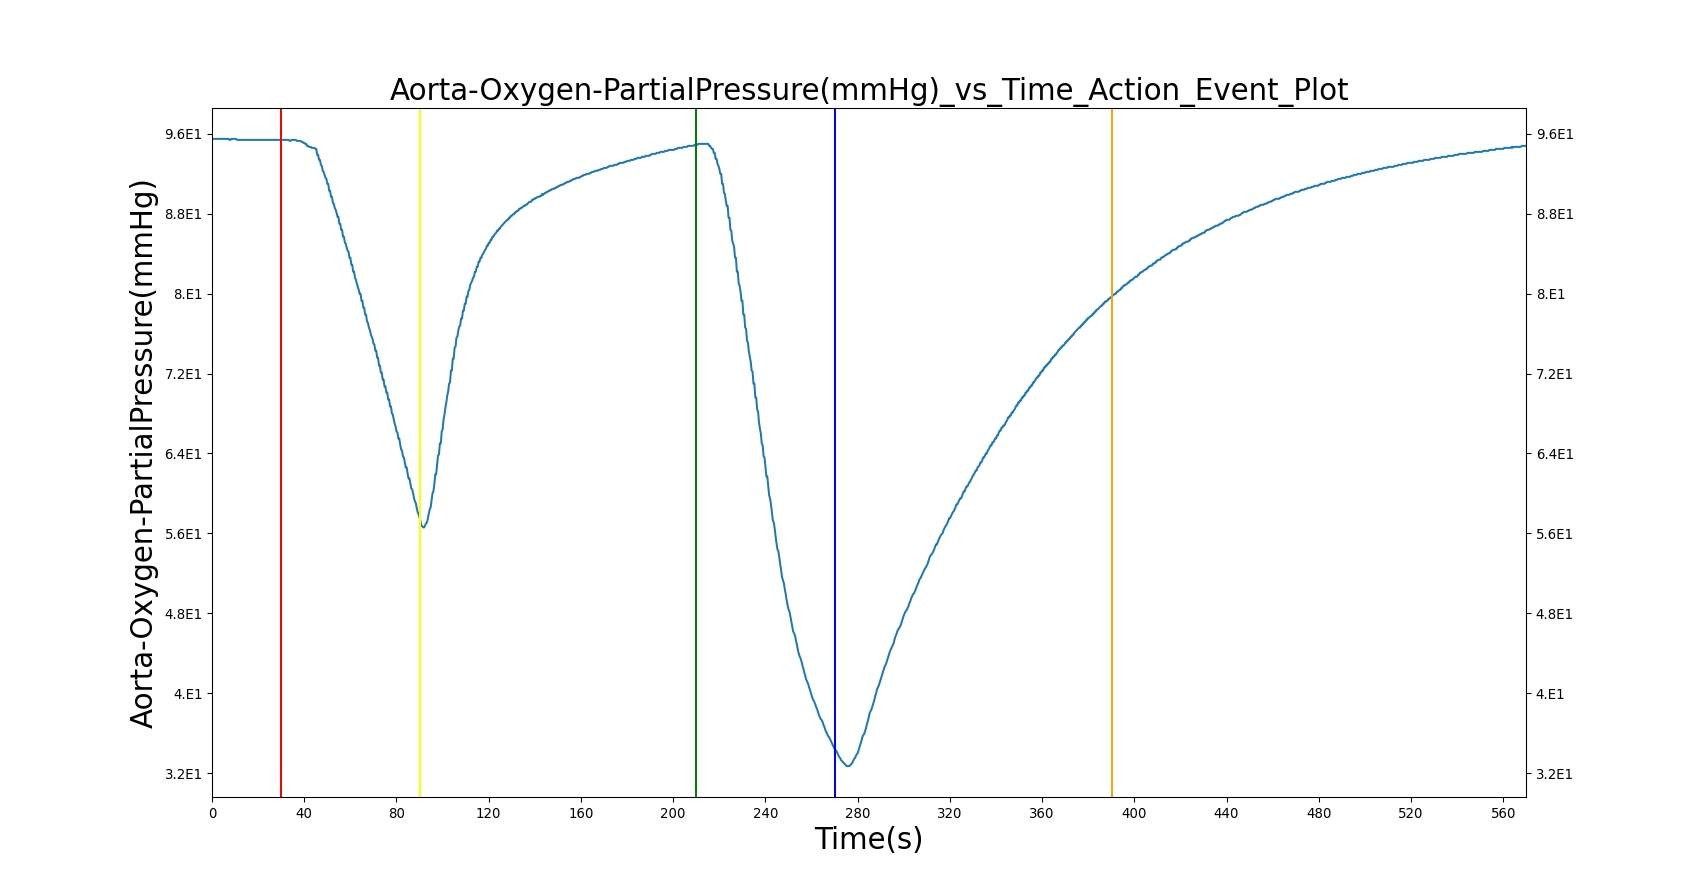 hight resolution of the oxygen supply failure due to o2 wall pressure loss causes a drop in arterial oxygen level while re supplying the system with oxygen by turning off the